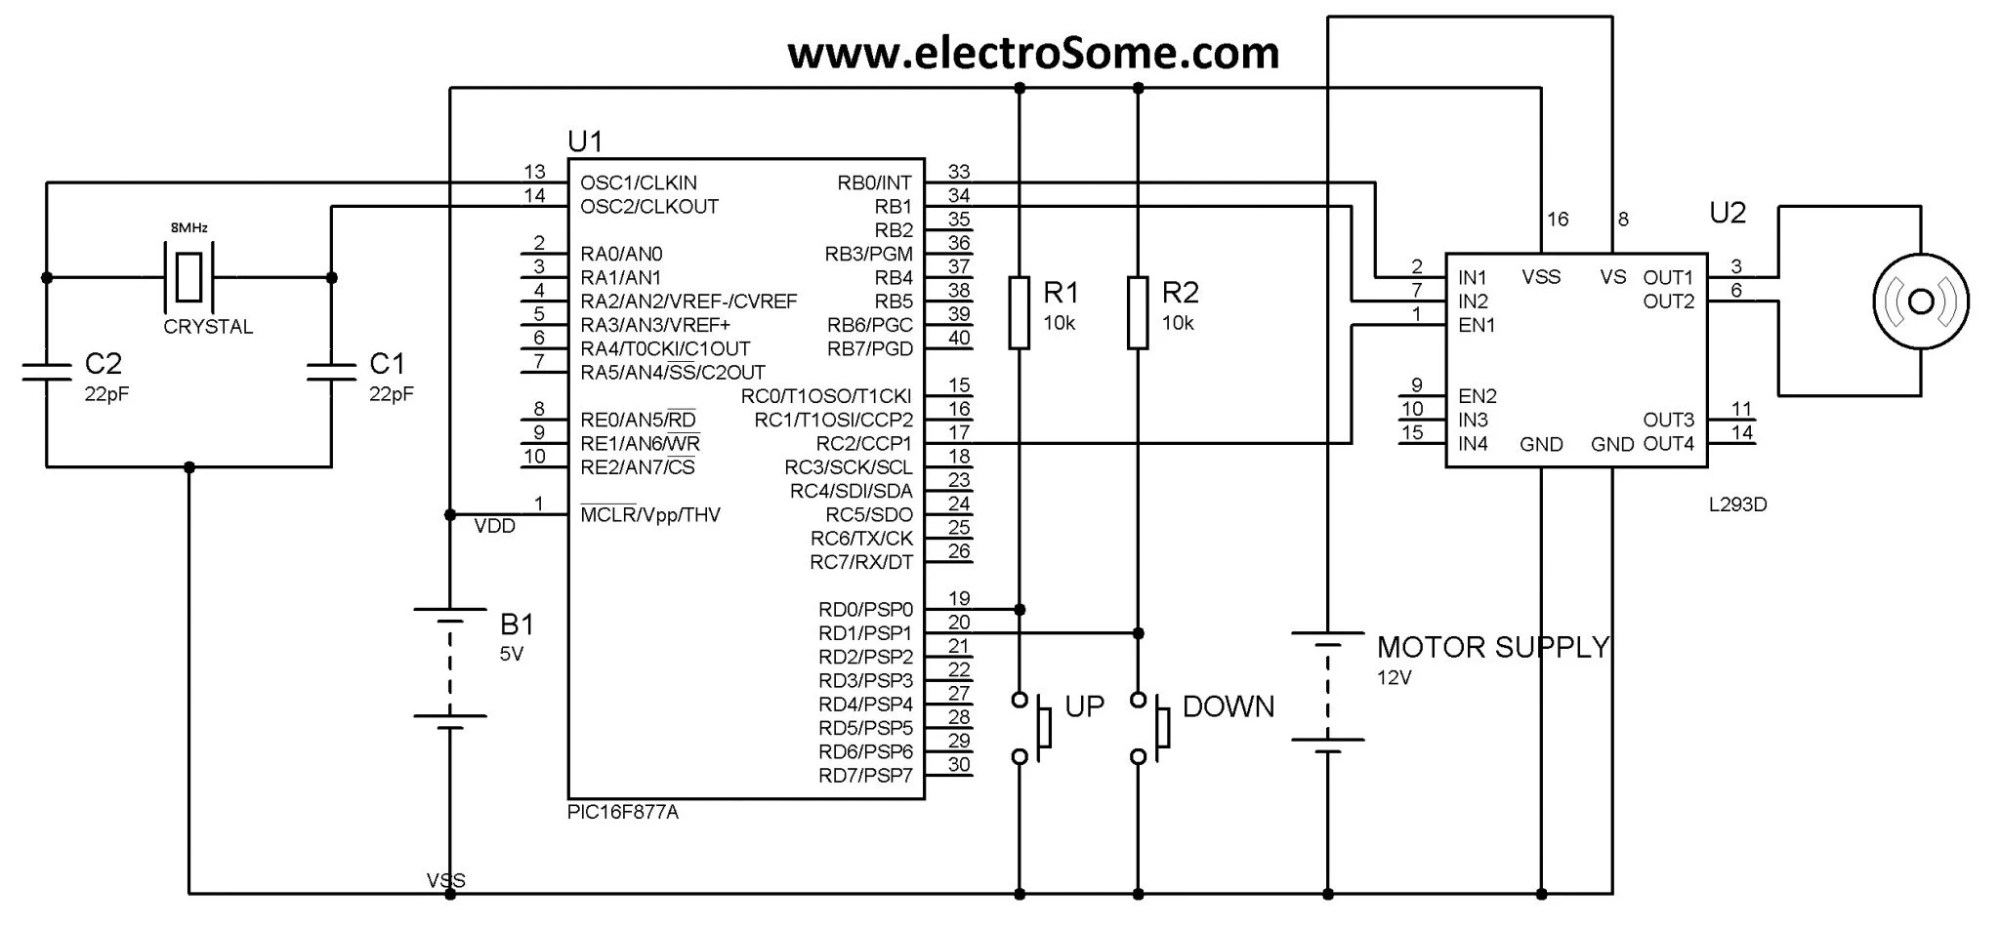 hight resolution of dc motor speed control using pwm with pic microcontroller mikroc brushless dc motor control circuit schematic using microchip pic16f877